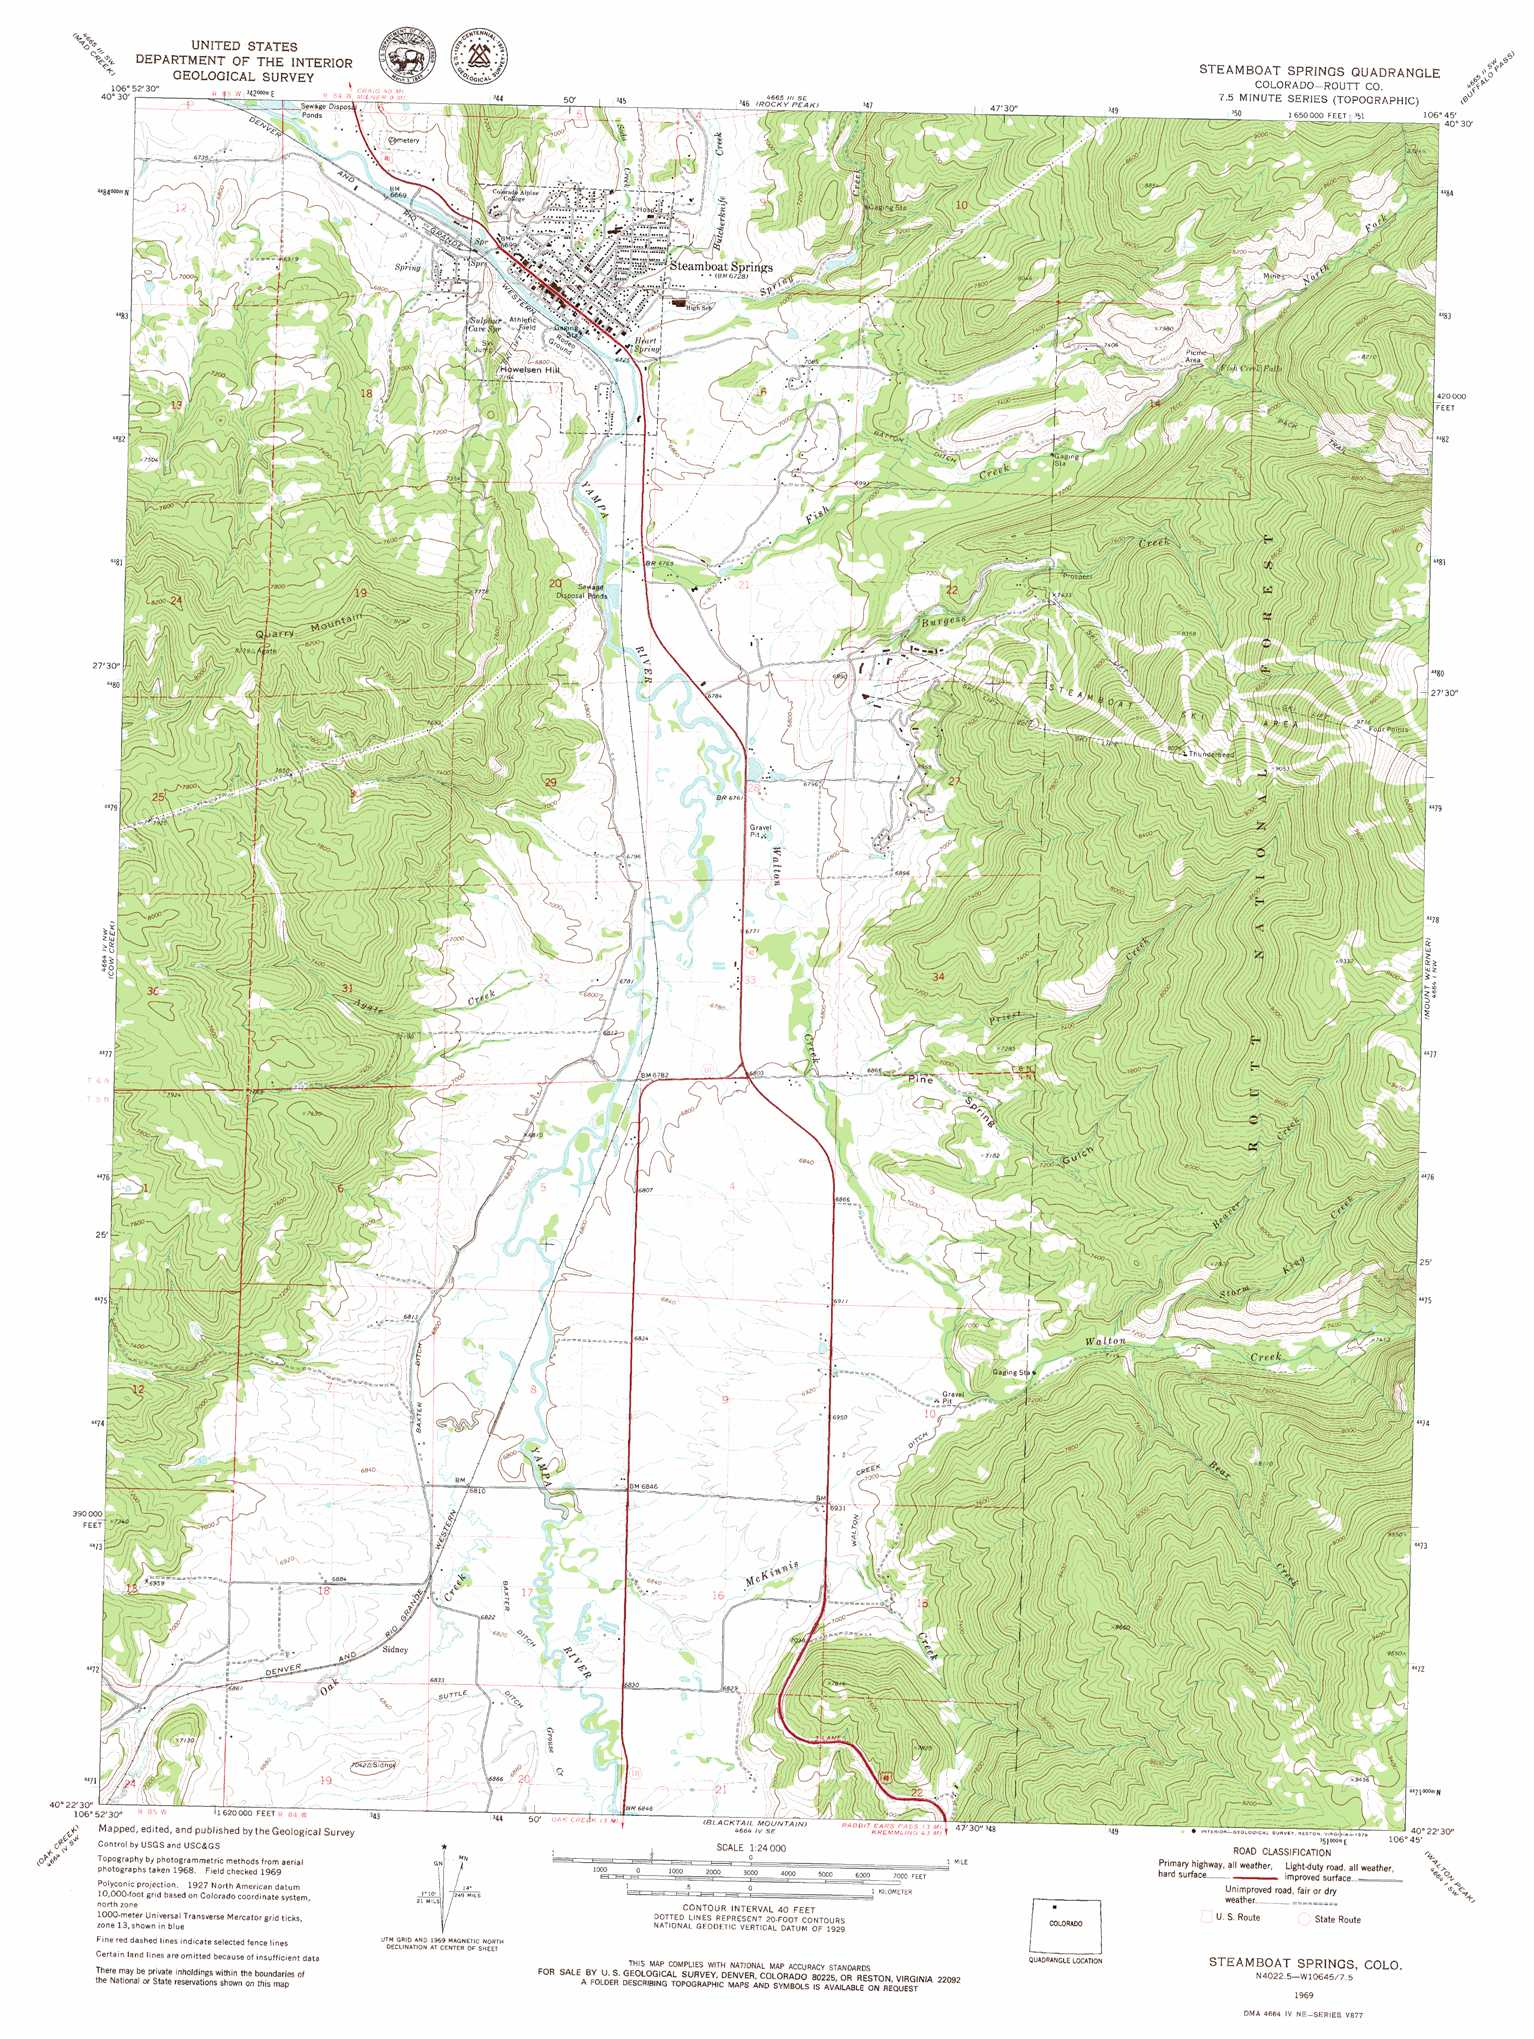 Steamboat Springs Buy This Steamboat Springs Topo Map